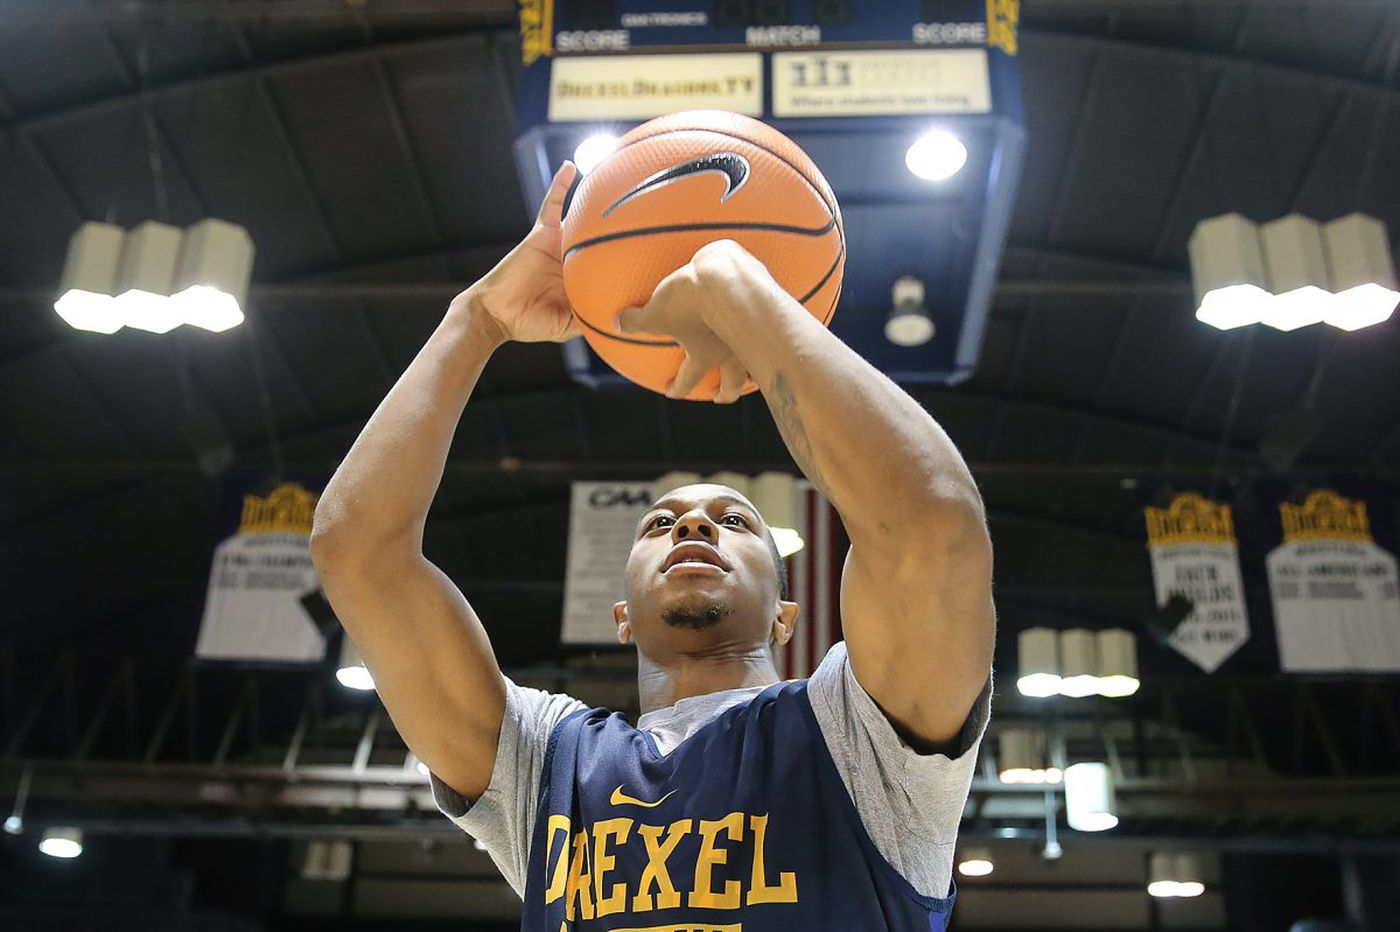 Drexel point guard Kurk Lee playing for his family